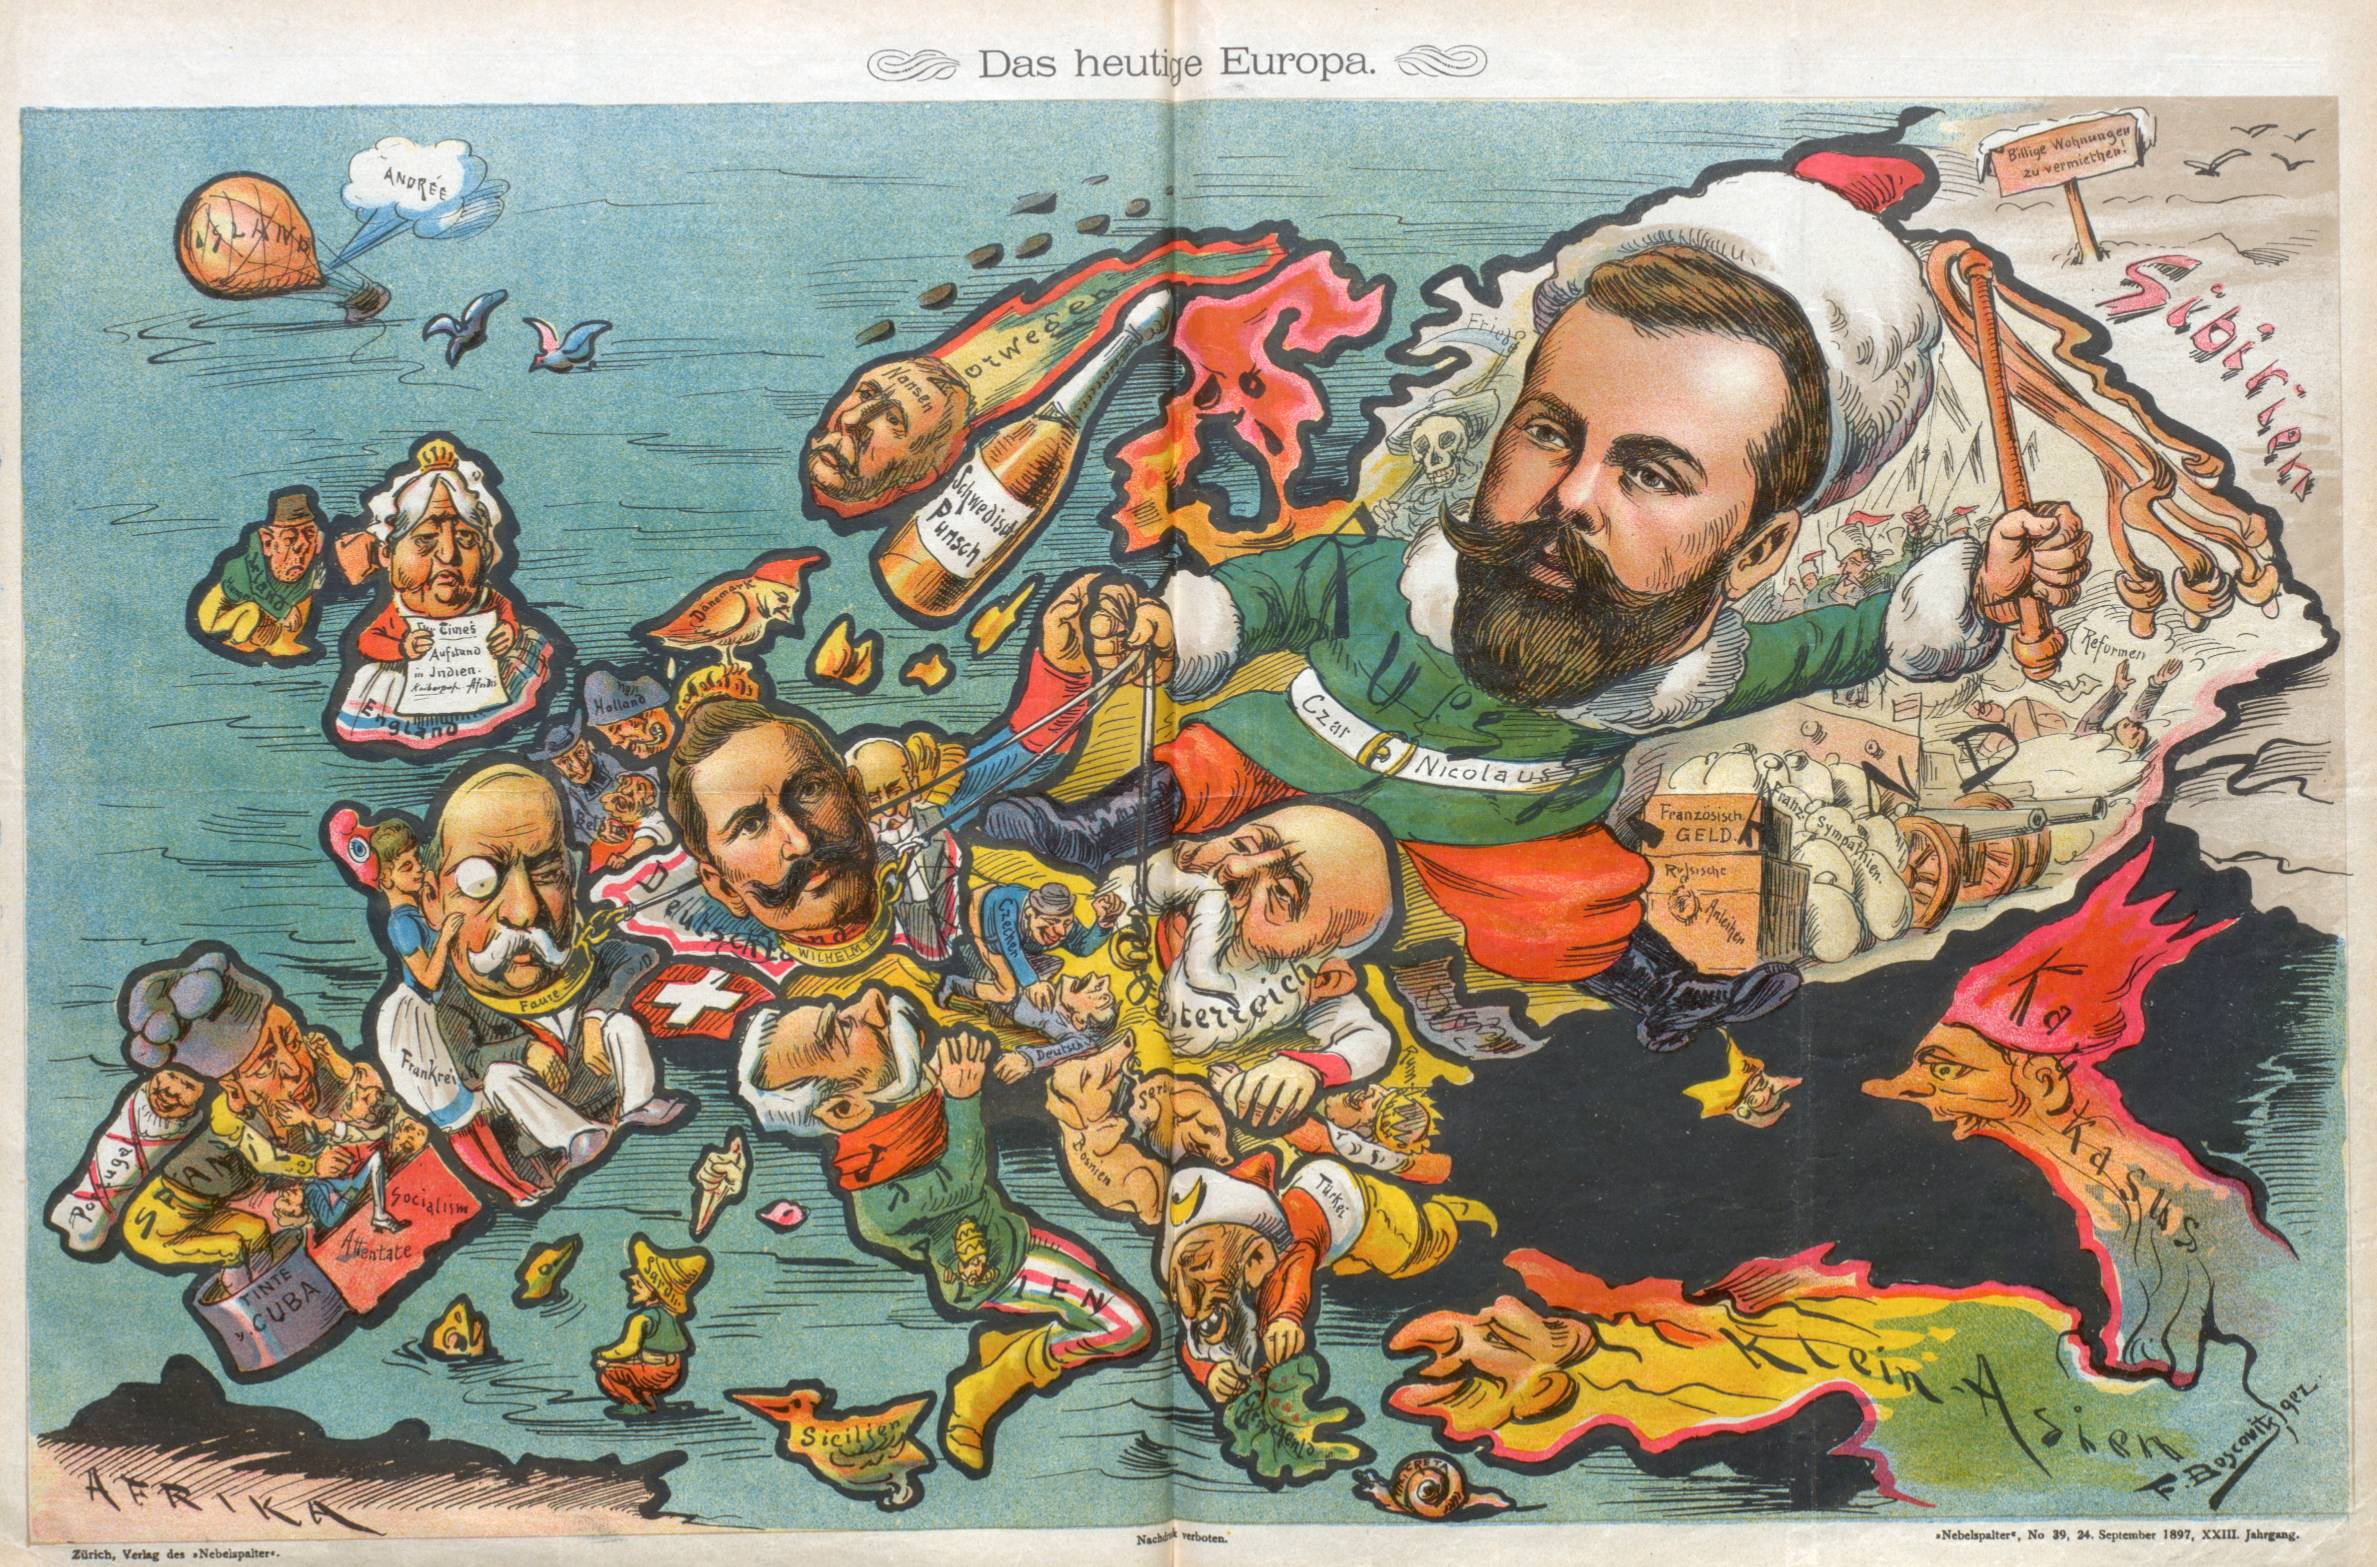 a history of imperialism in europe History of europe: history of europe, history of european peoples and cultures from prehistoric times to the present europe is a more ambiguous term than most.